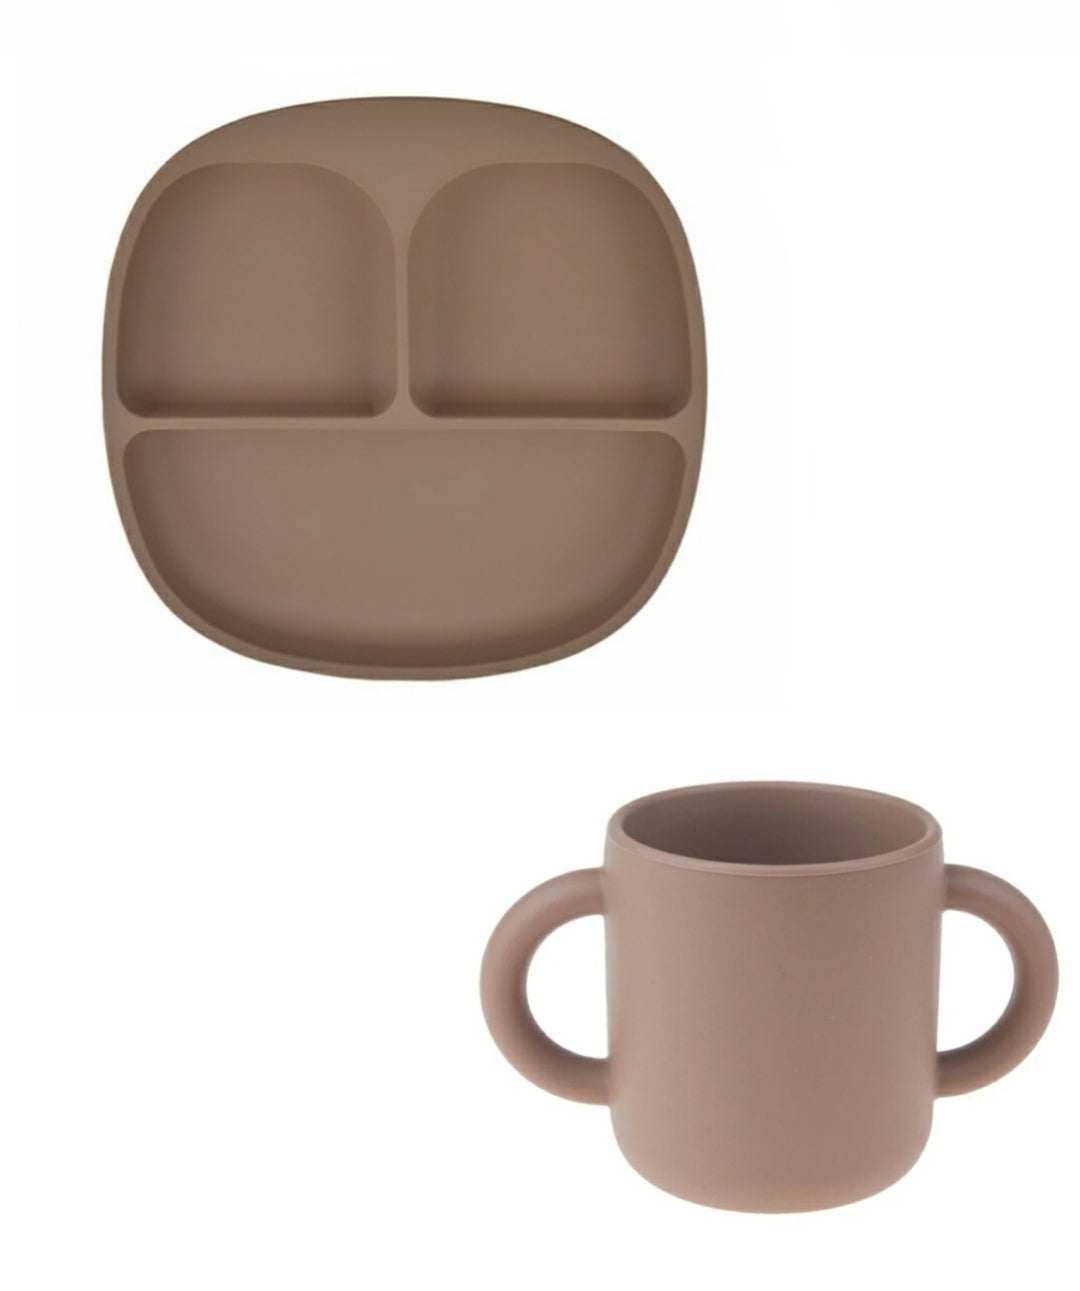 The Harlow Tray & Cup Set